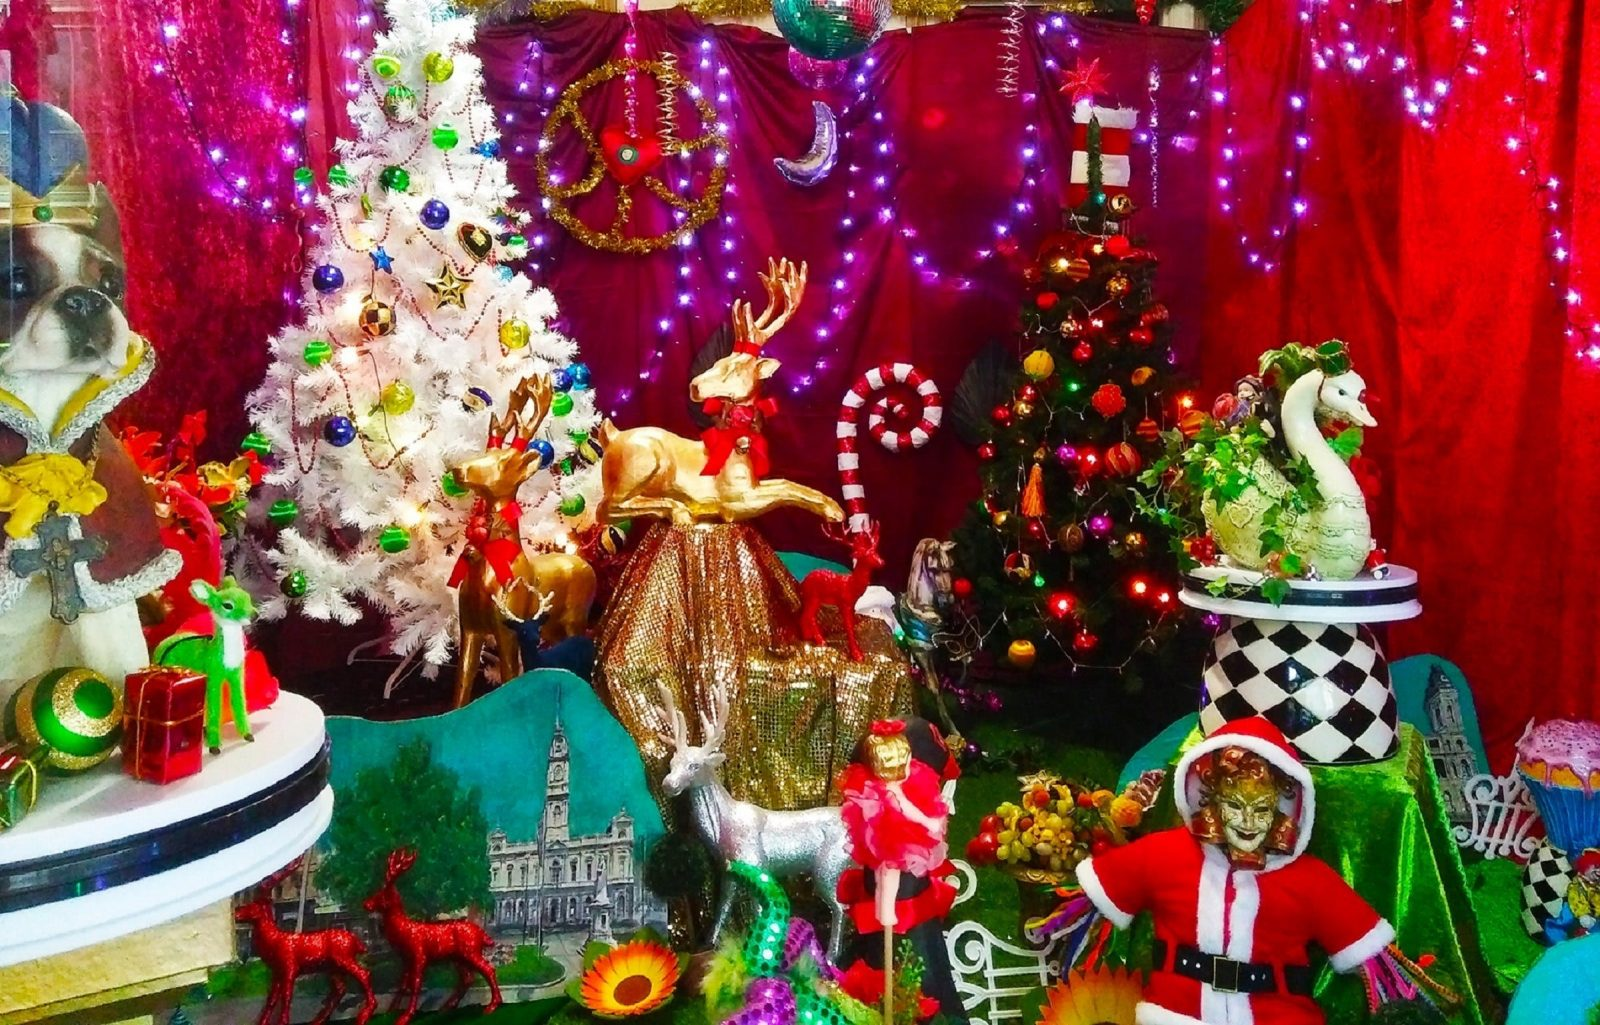 12 Days of Christmas Windows